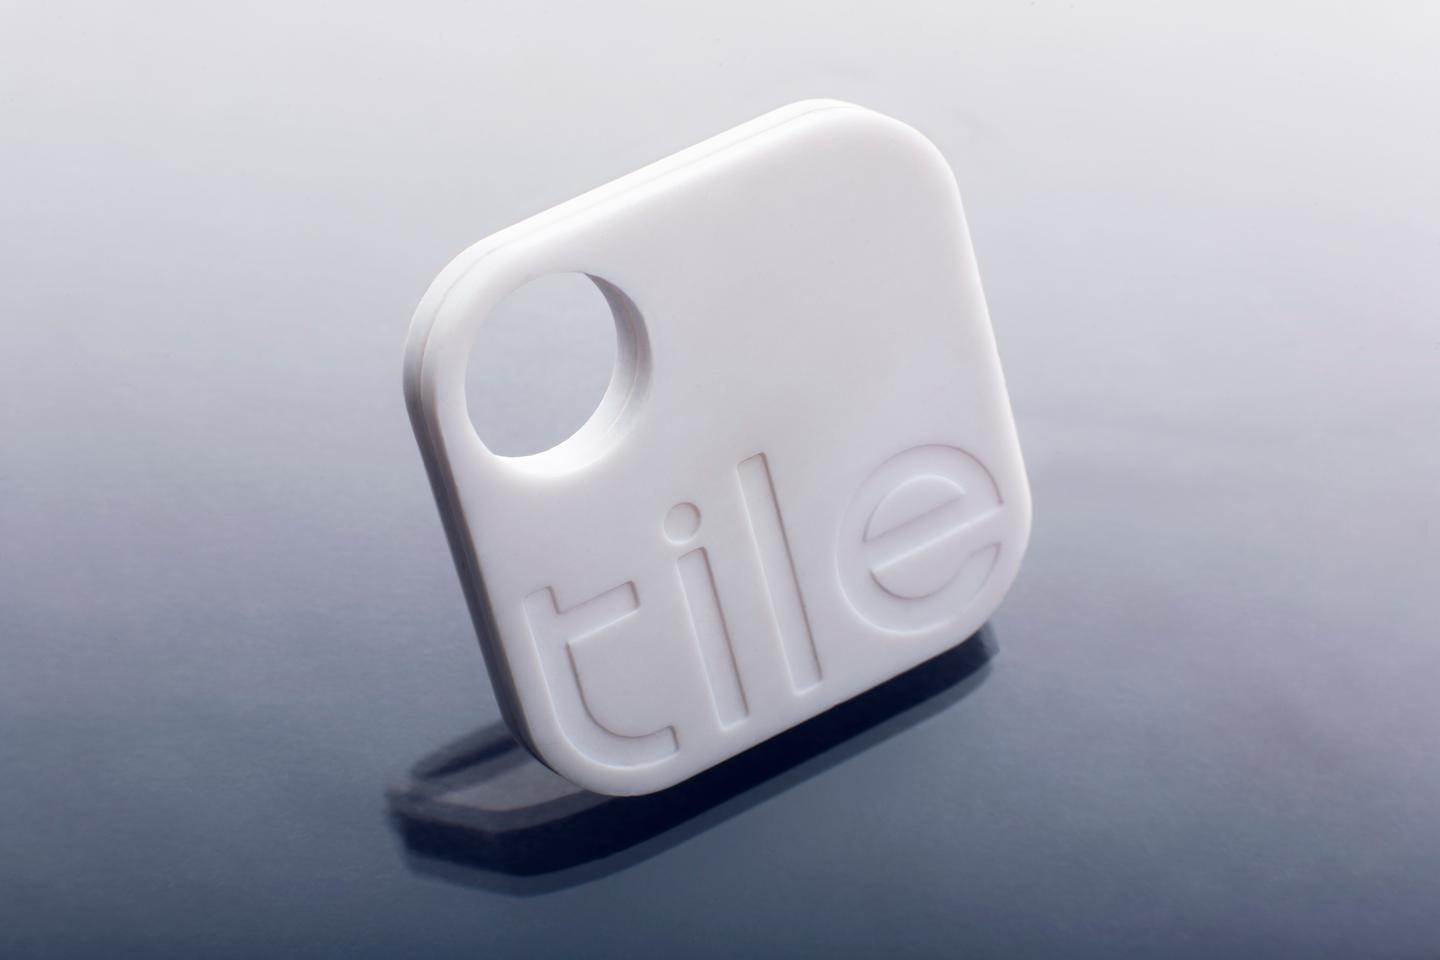 Tile is a new sensor tag for tracking objects